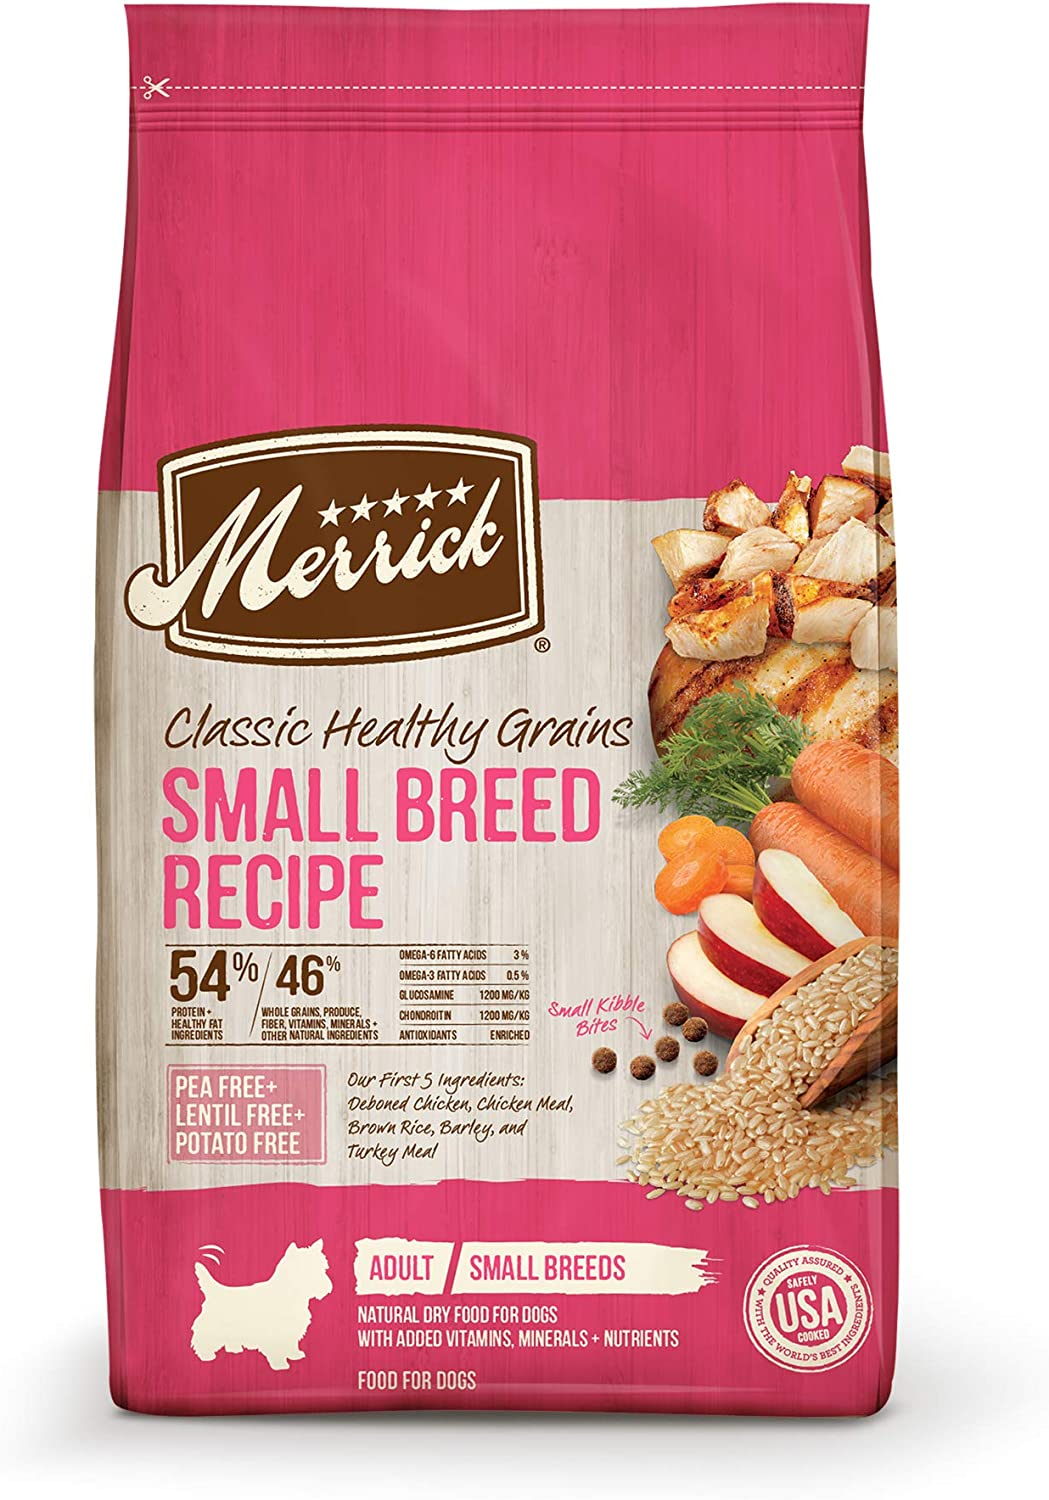 4. Merrick Classic Small Breed Recipe